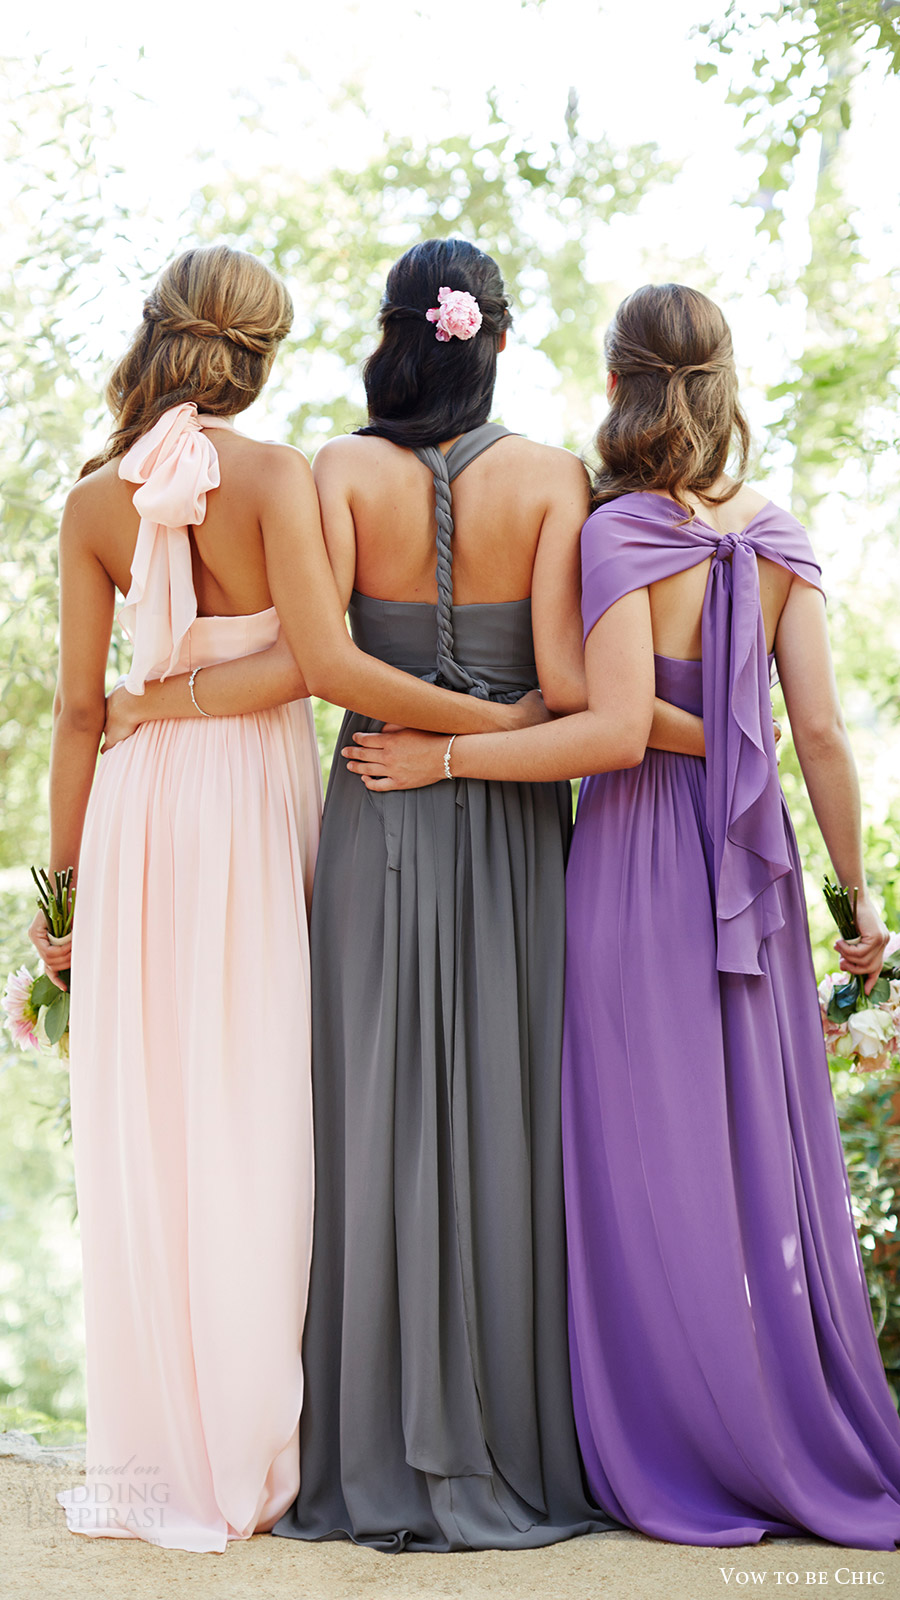 vow to be chic 2016 aidan bridesmaid dress mismatch mix match bridesmaids gowns for rent